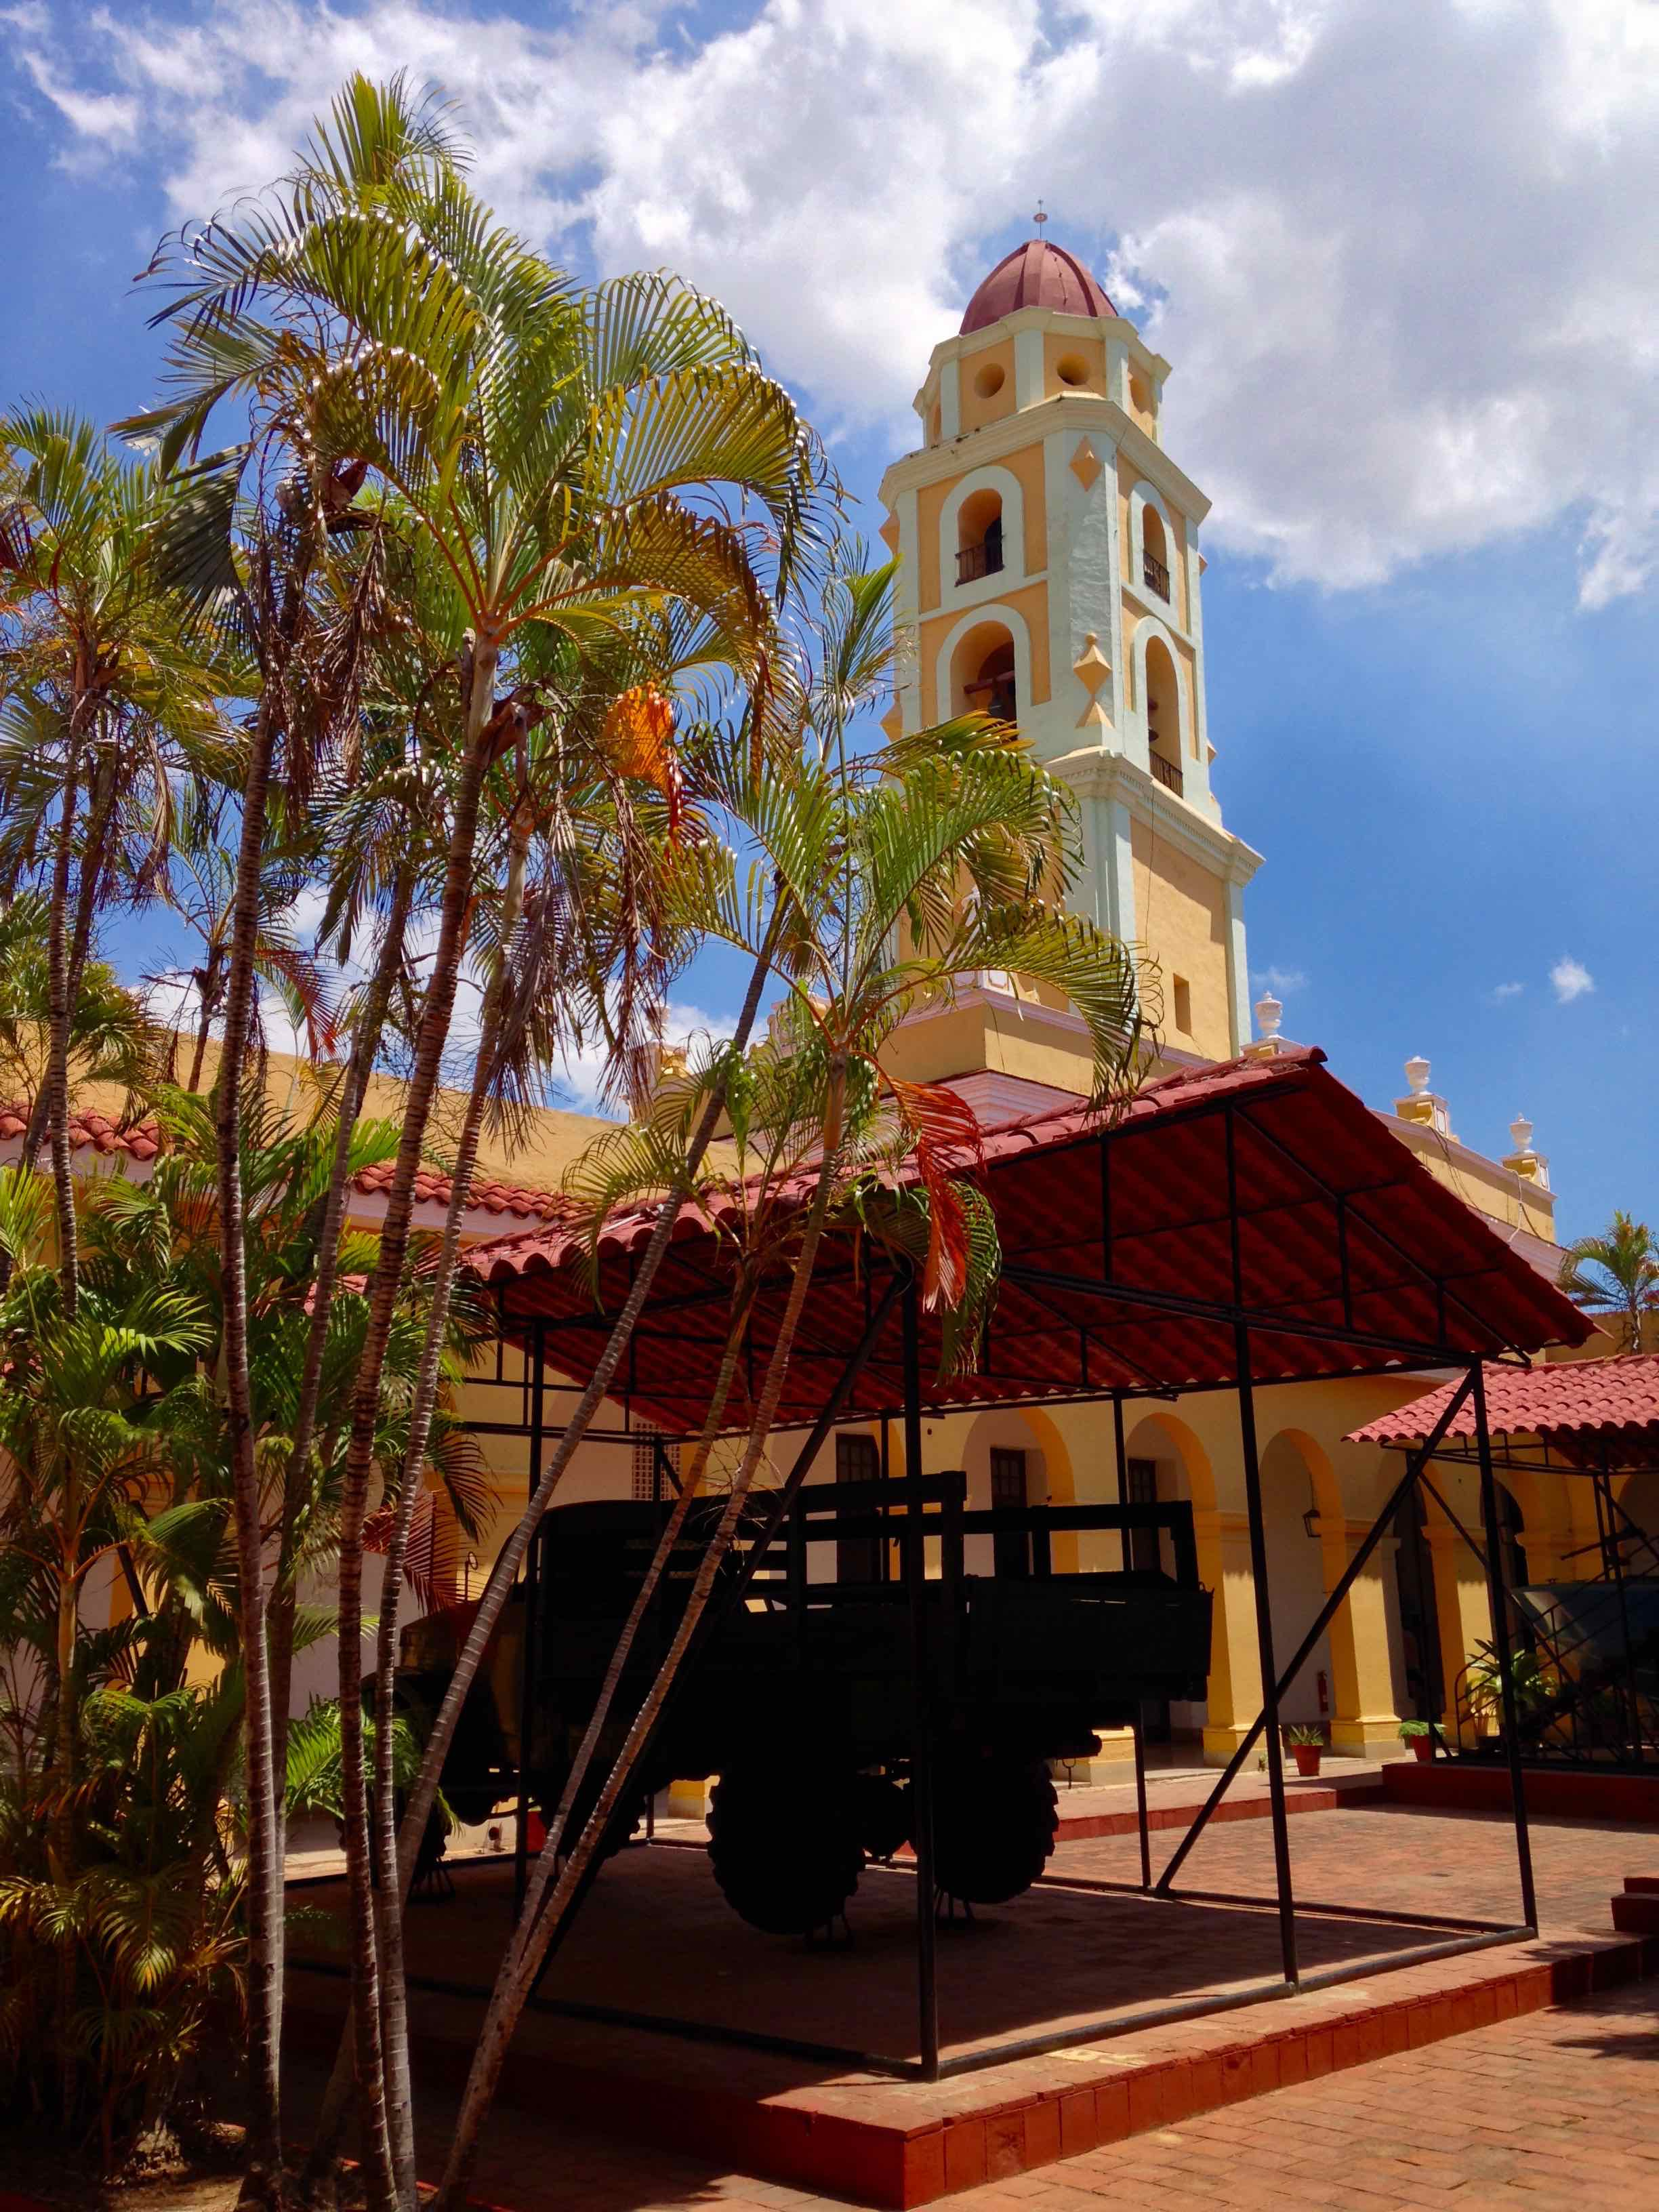 5 Best Things To Do In Trinidad Cuba Where S The Gringo